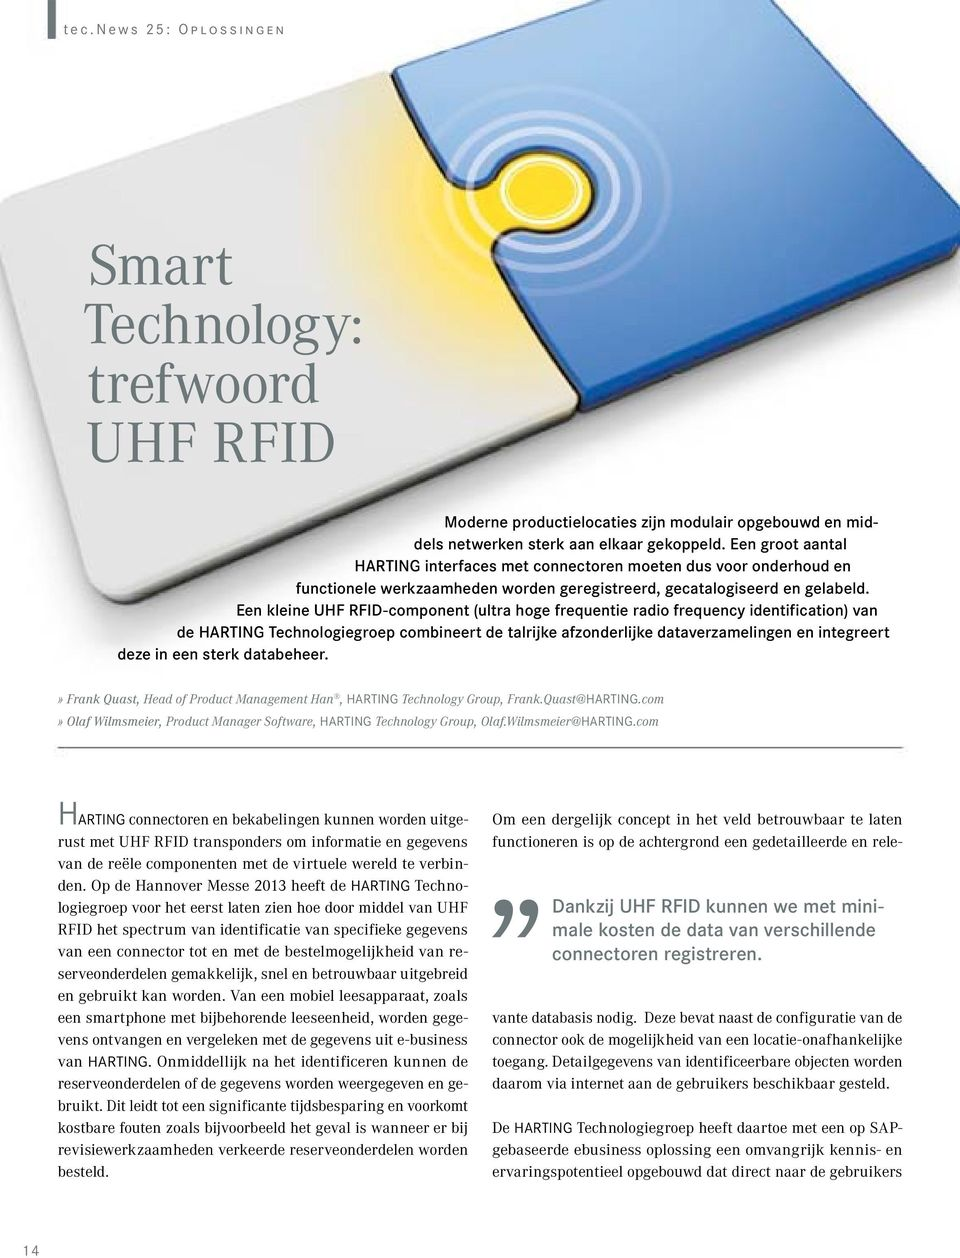 Een kleine UHF RFID-component (ultra hoge frequentie radio frequency identification) van de HARTING Technologiegroep combineert de talrijke afzonderlijke dataverzamelingen en integreert deze in een